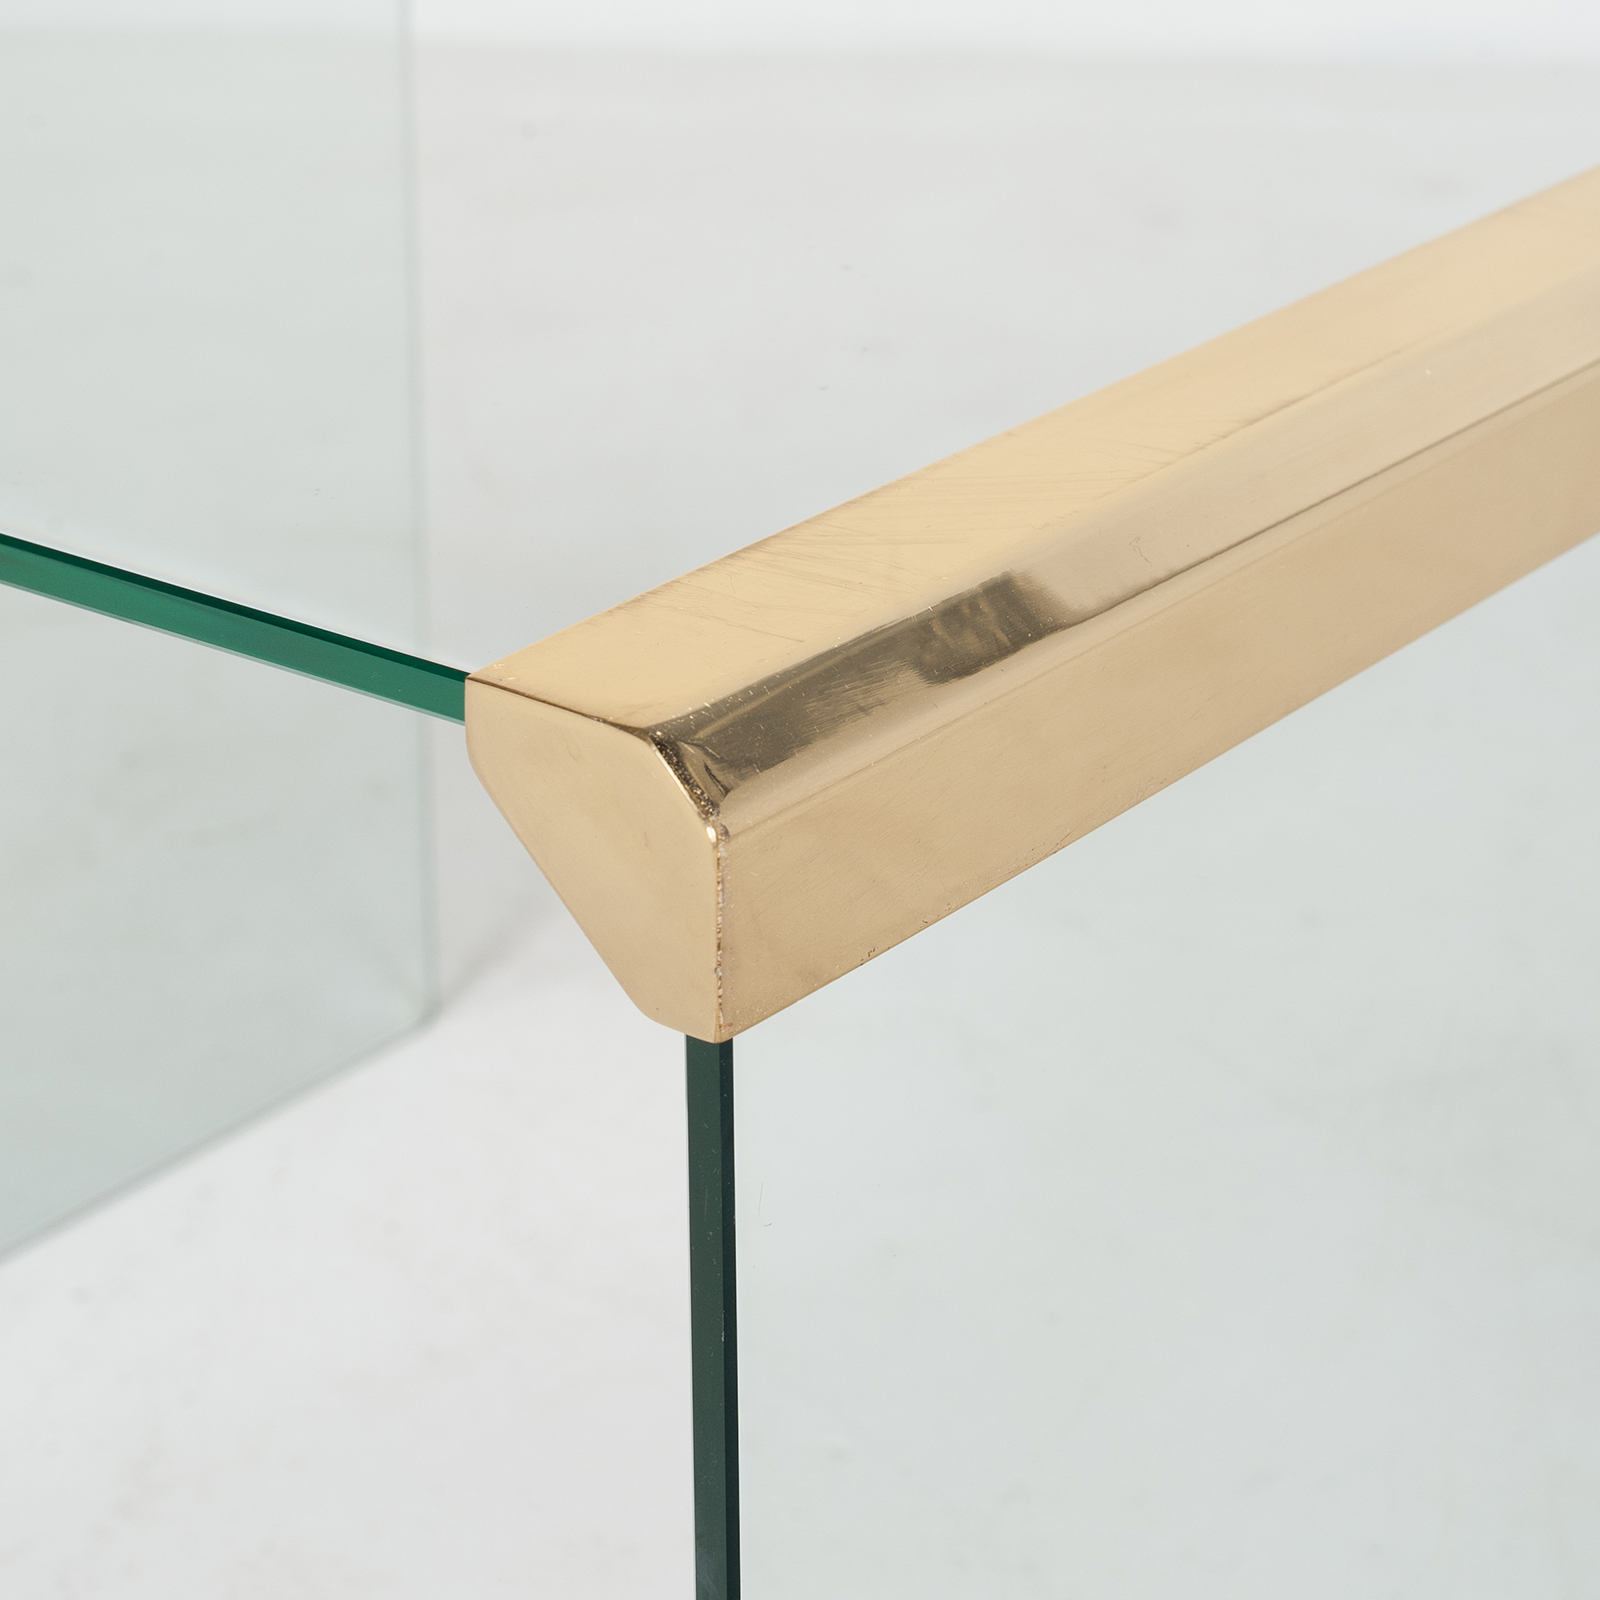 Waterfall Side Table By Pace In Glass And Anodised Brass, 1970s, United States901